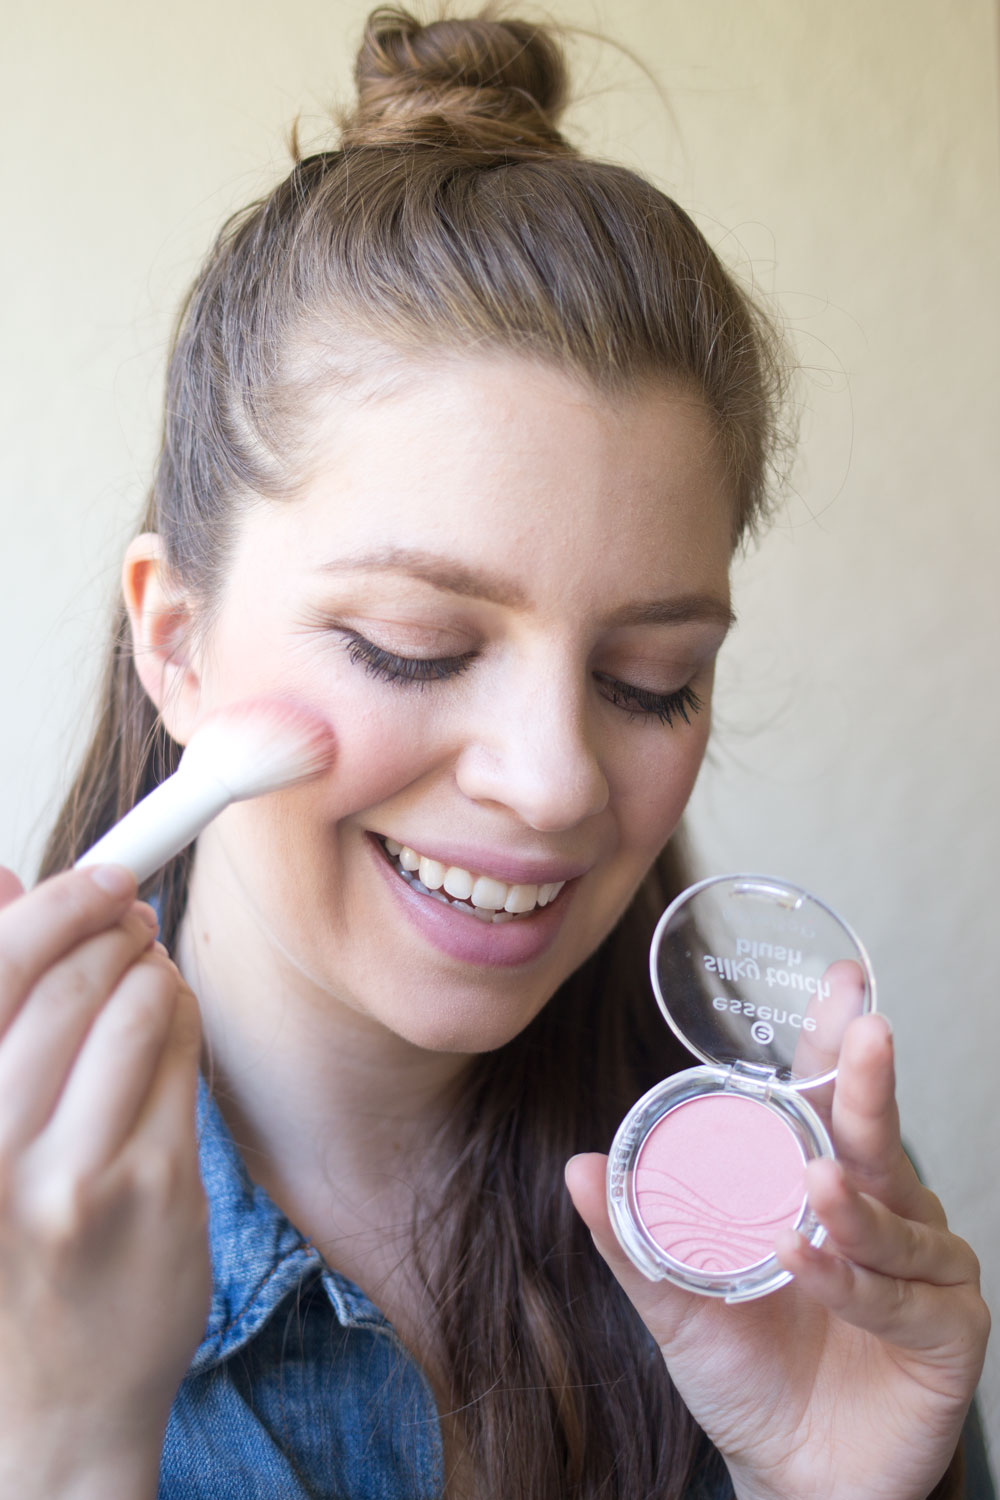 essence-cosmetics-silky-touch-blush